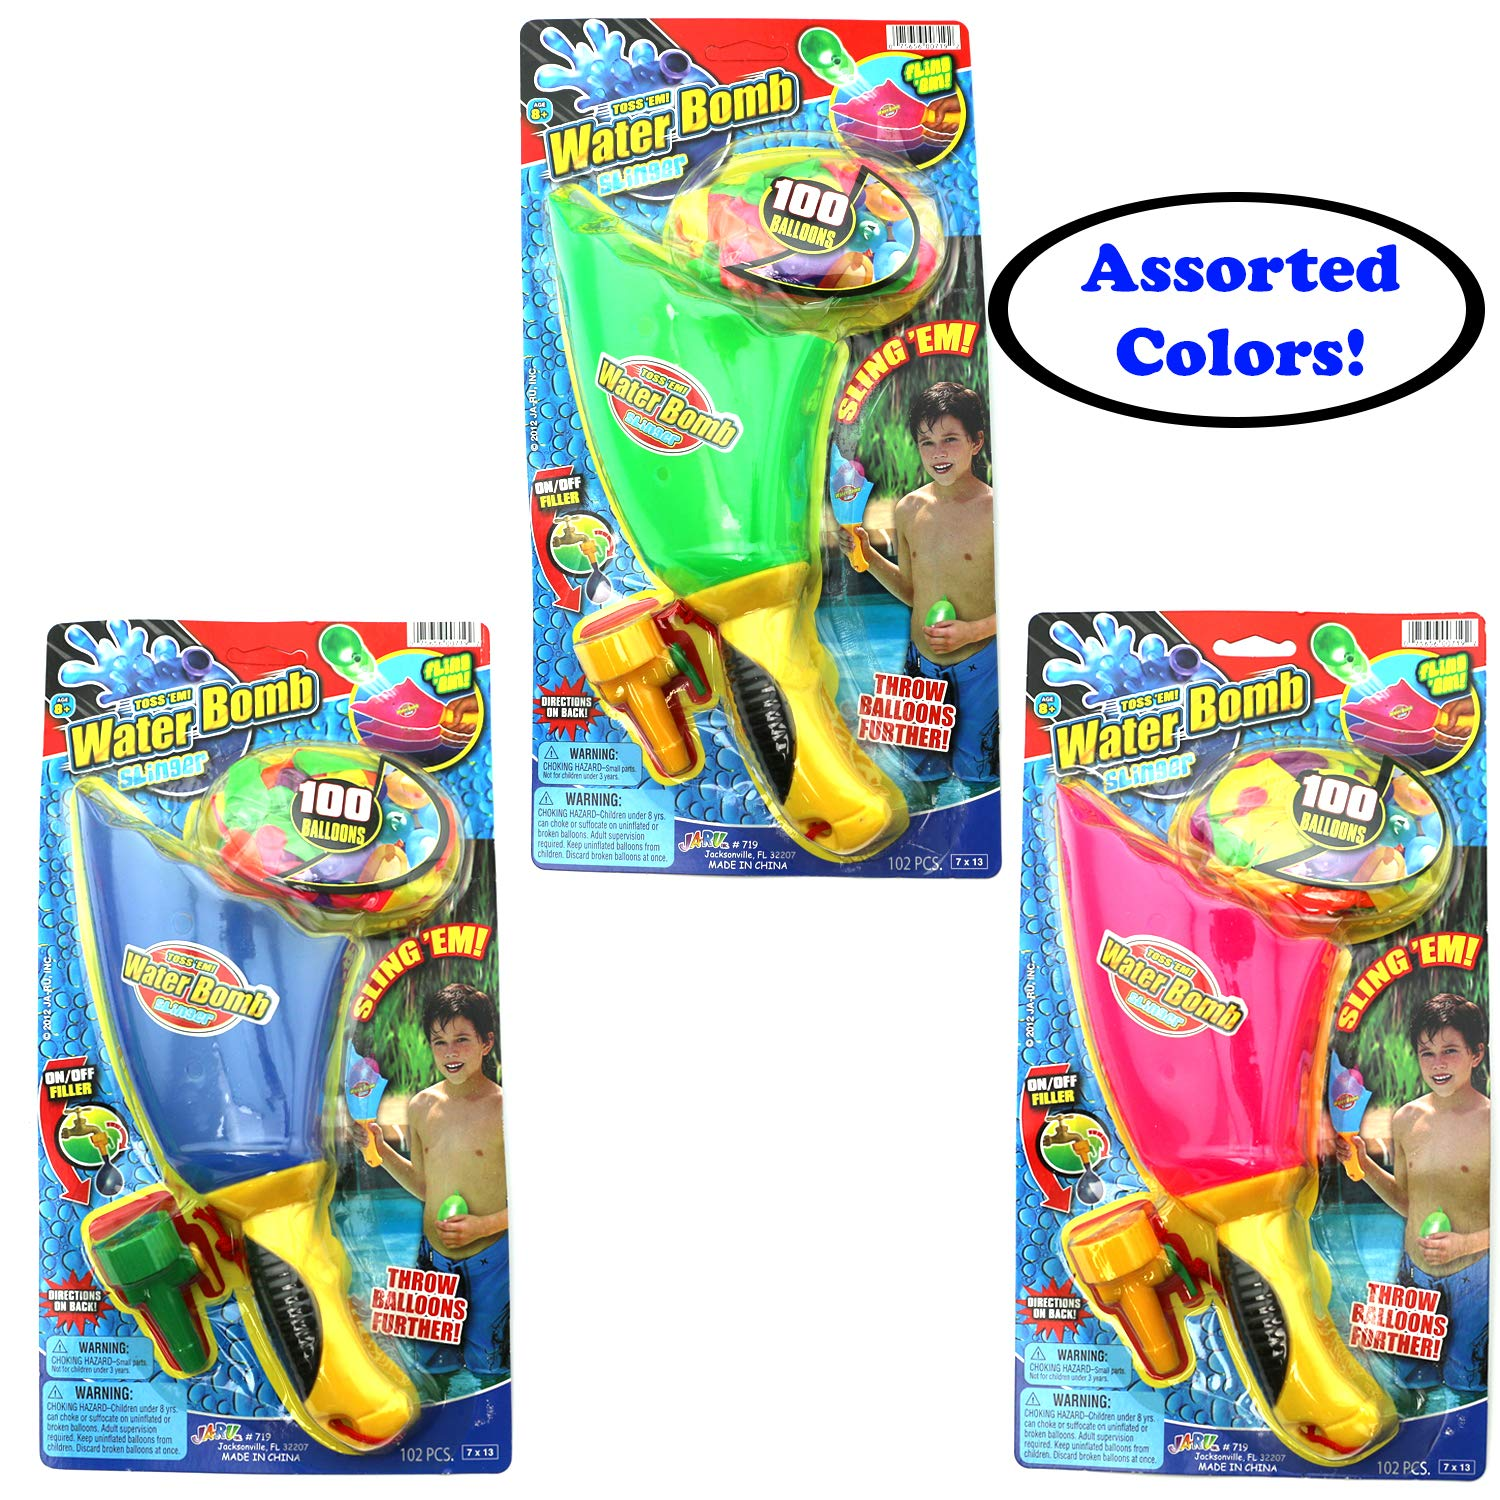 Ultimate 10 Piece Water Balloon Set 855 Water Balloons, Slinger, Carry Tote, Refill Gun, Water Balloon laucher Slingshot Water Balloon Party with 2 GosuToys Stickers by Gosu Toys (Image #2)